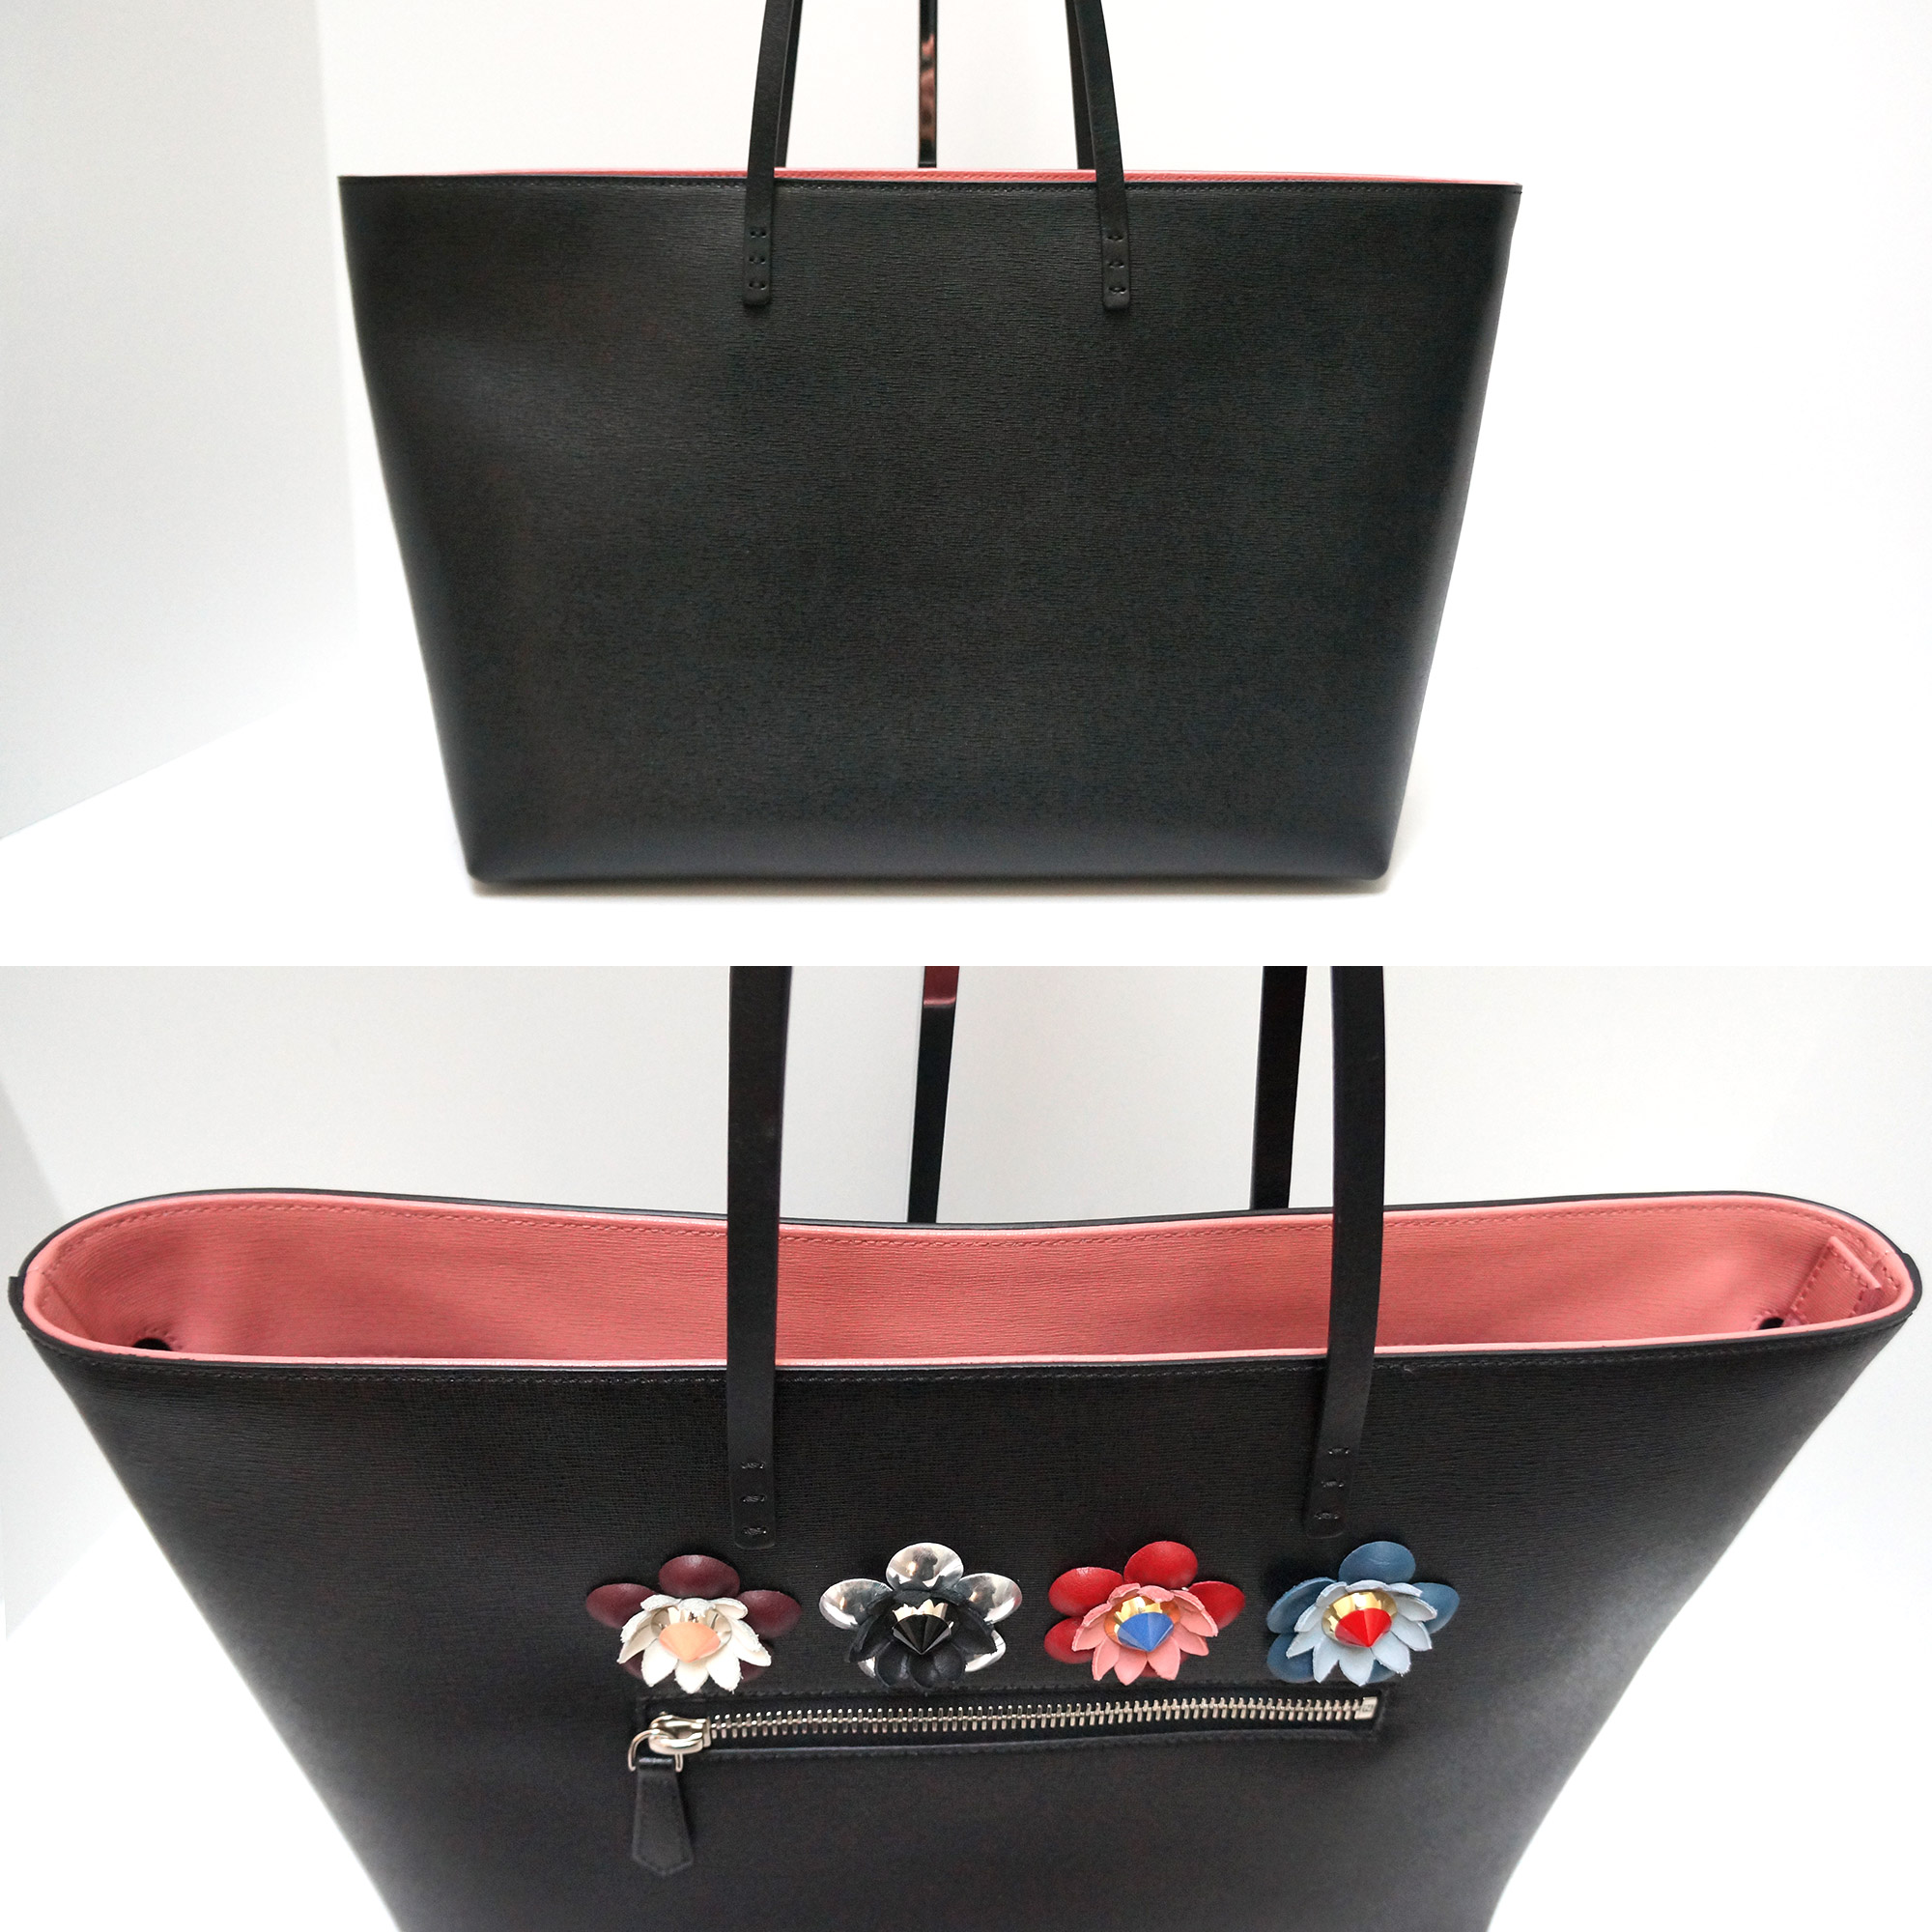 00589cb0f Fendi Medium Flower Embellished Roll Tote Bag Black Leather with ...